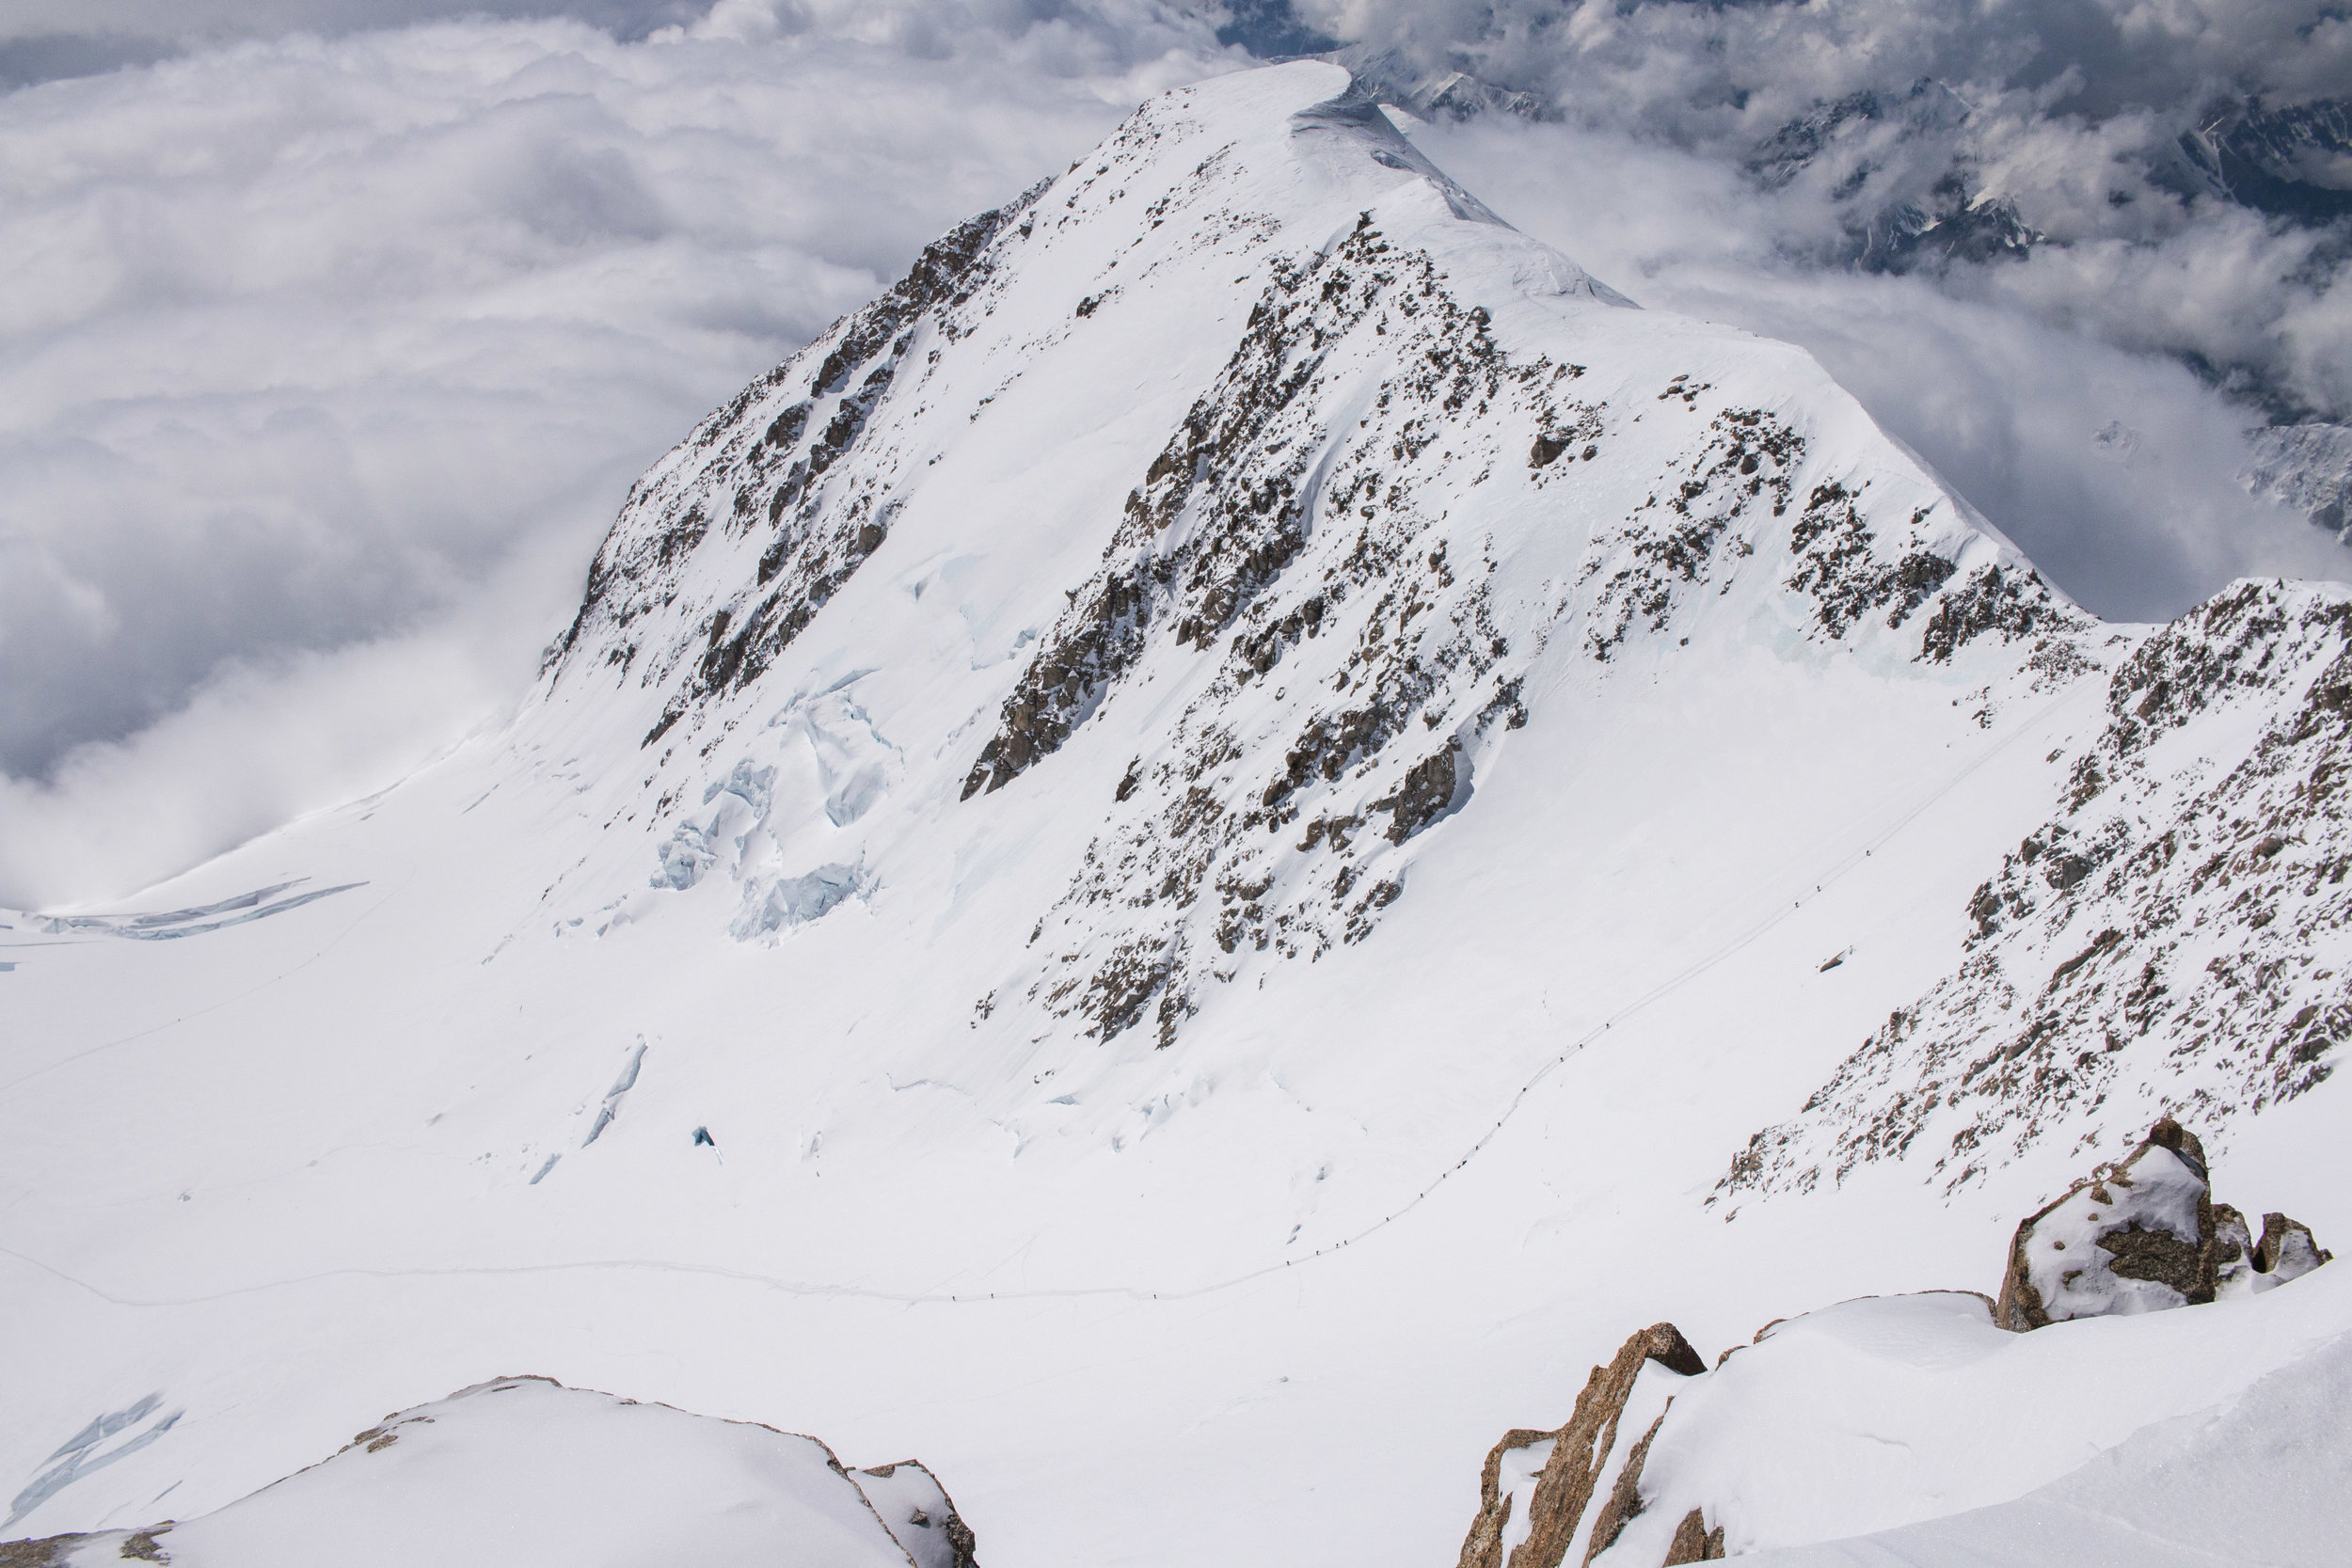 Looking down at the fixed lines from camp 4 @ 17,200'.